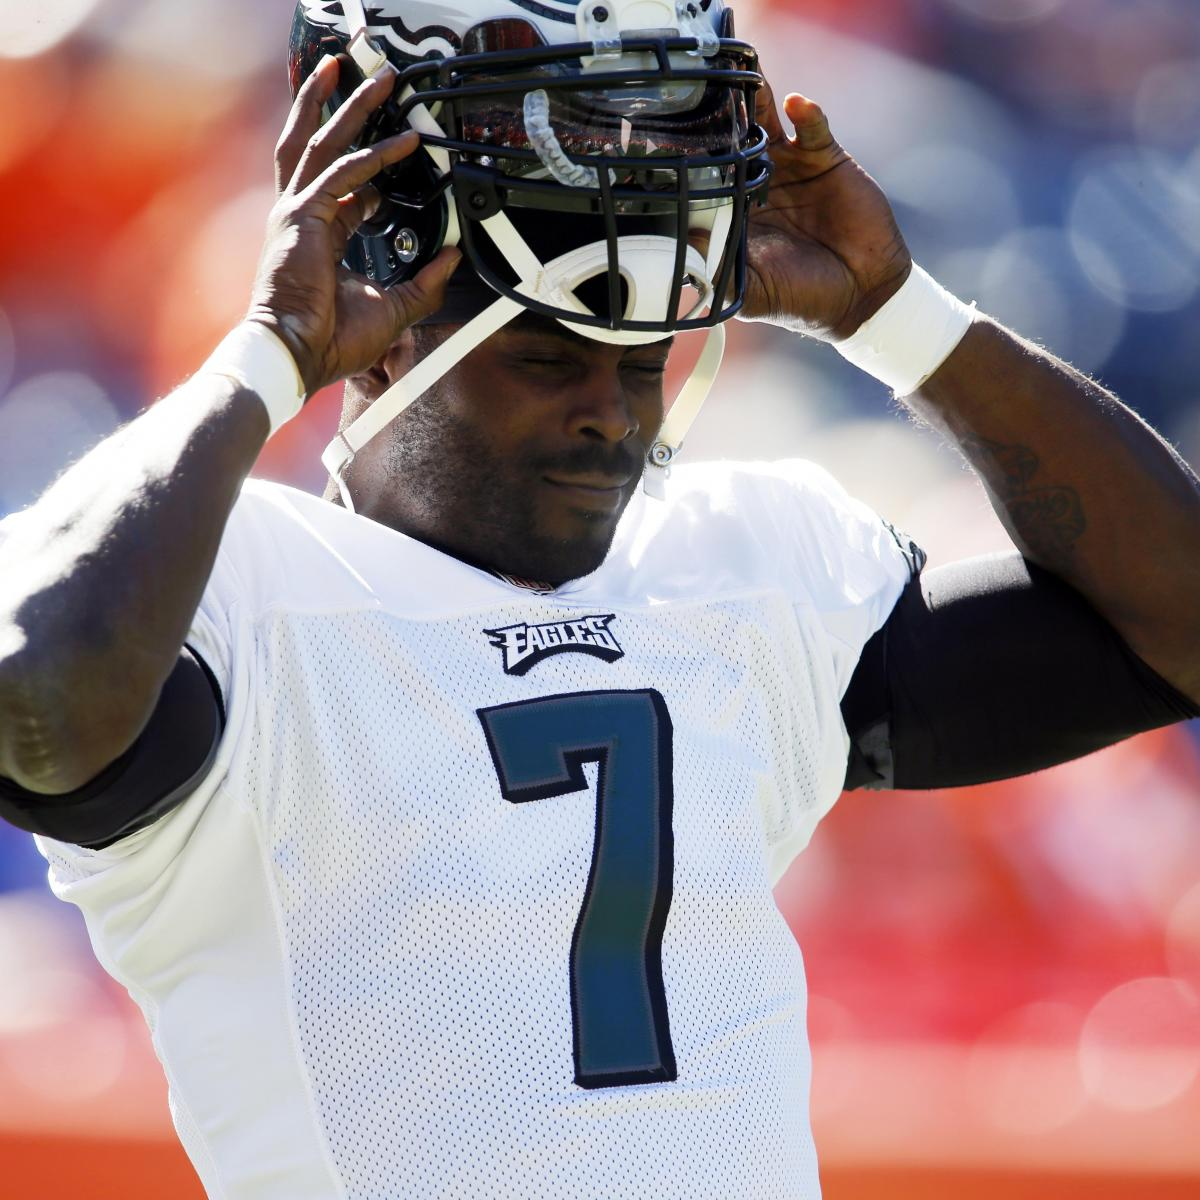 b15a0caae Why the New York Jets Should Sign Michael Vick